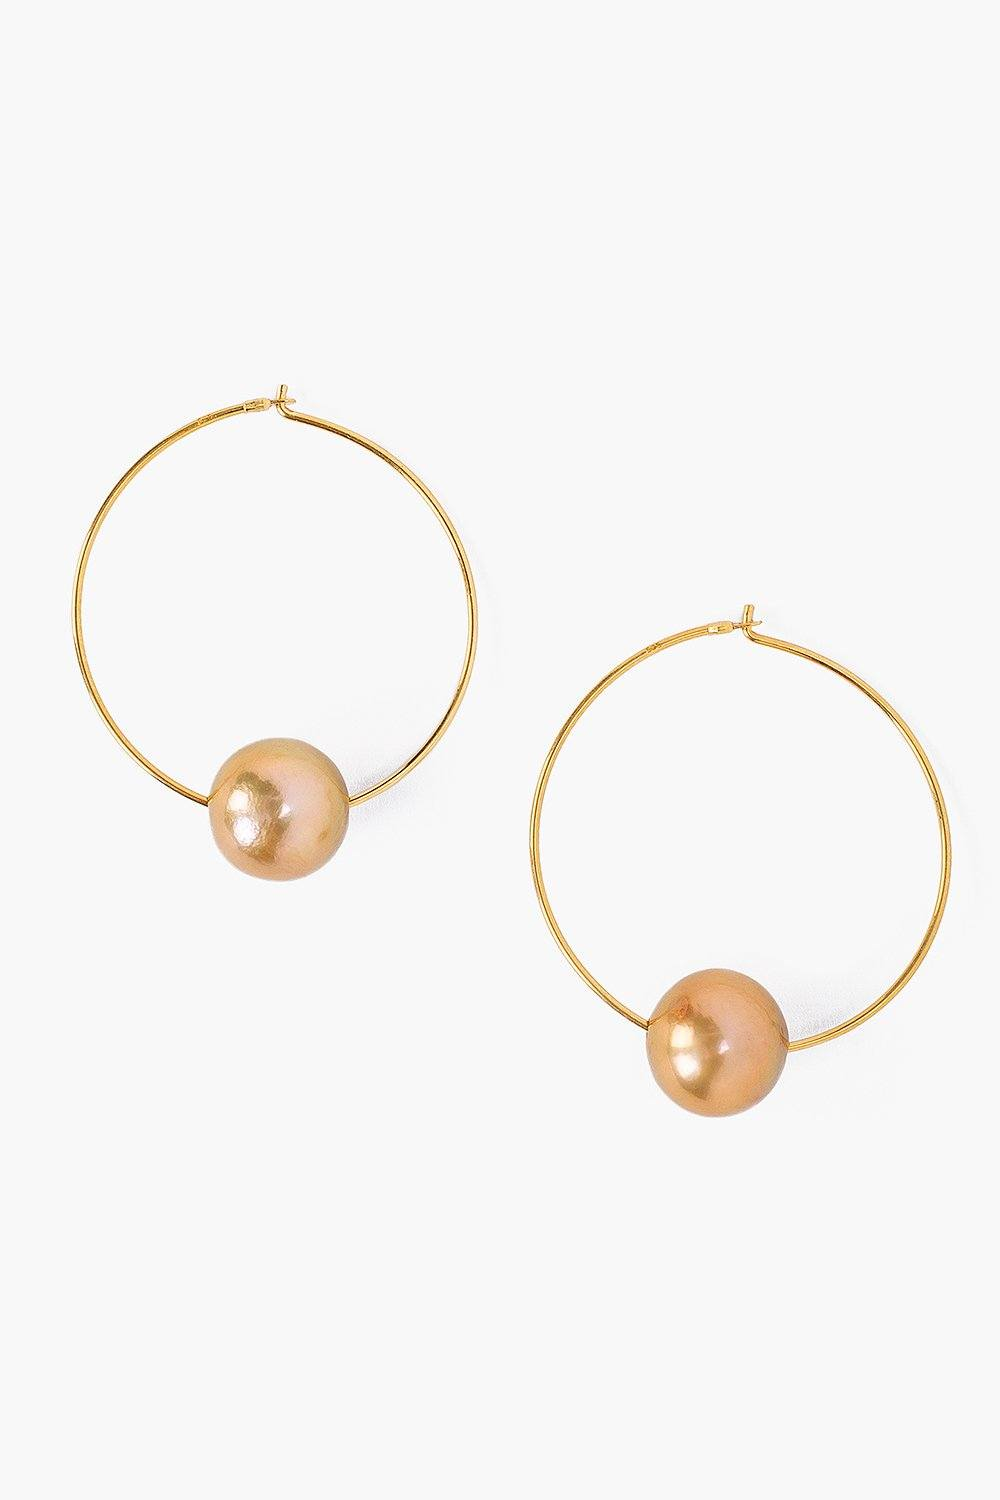 Champagne Pearl and Gold Hoop Earrings